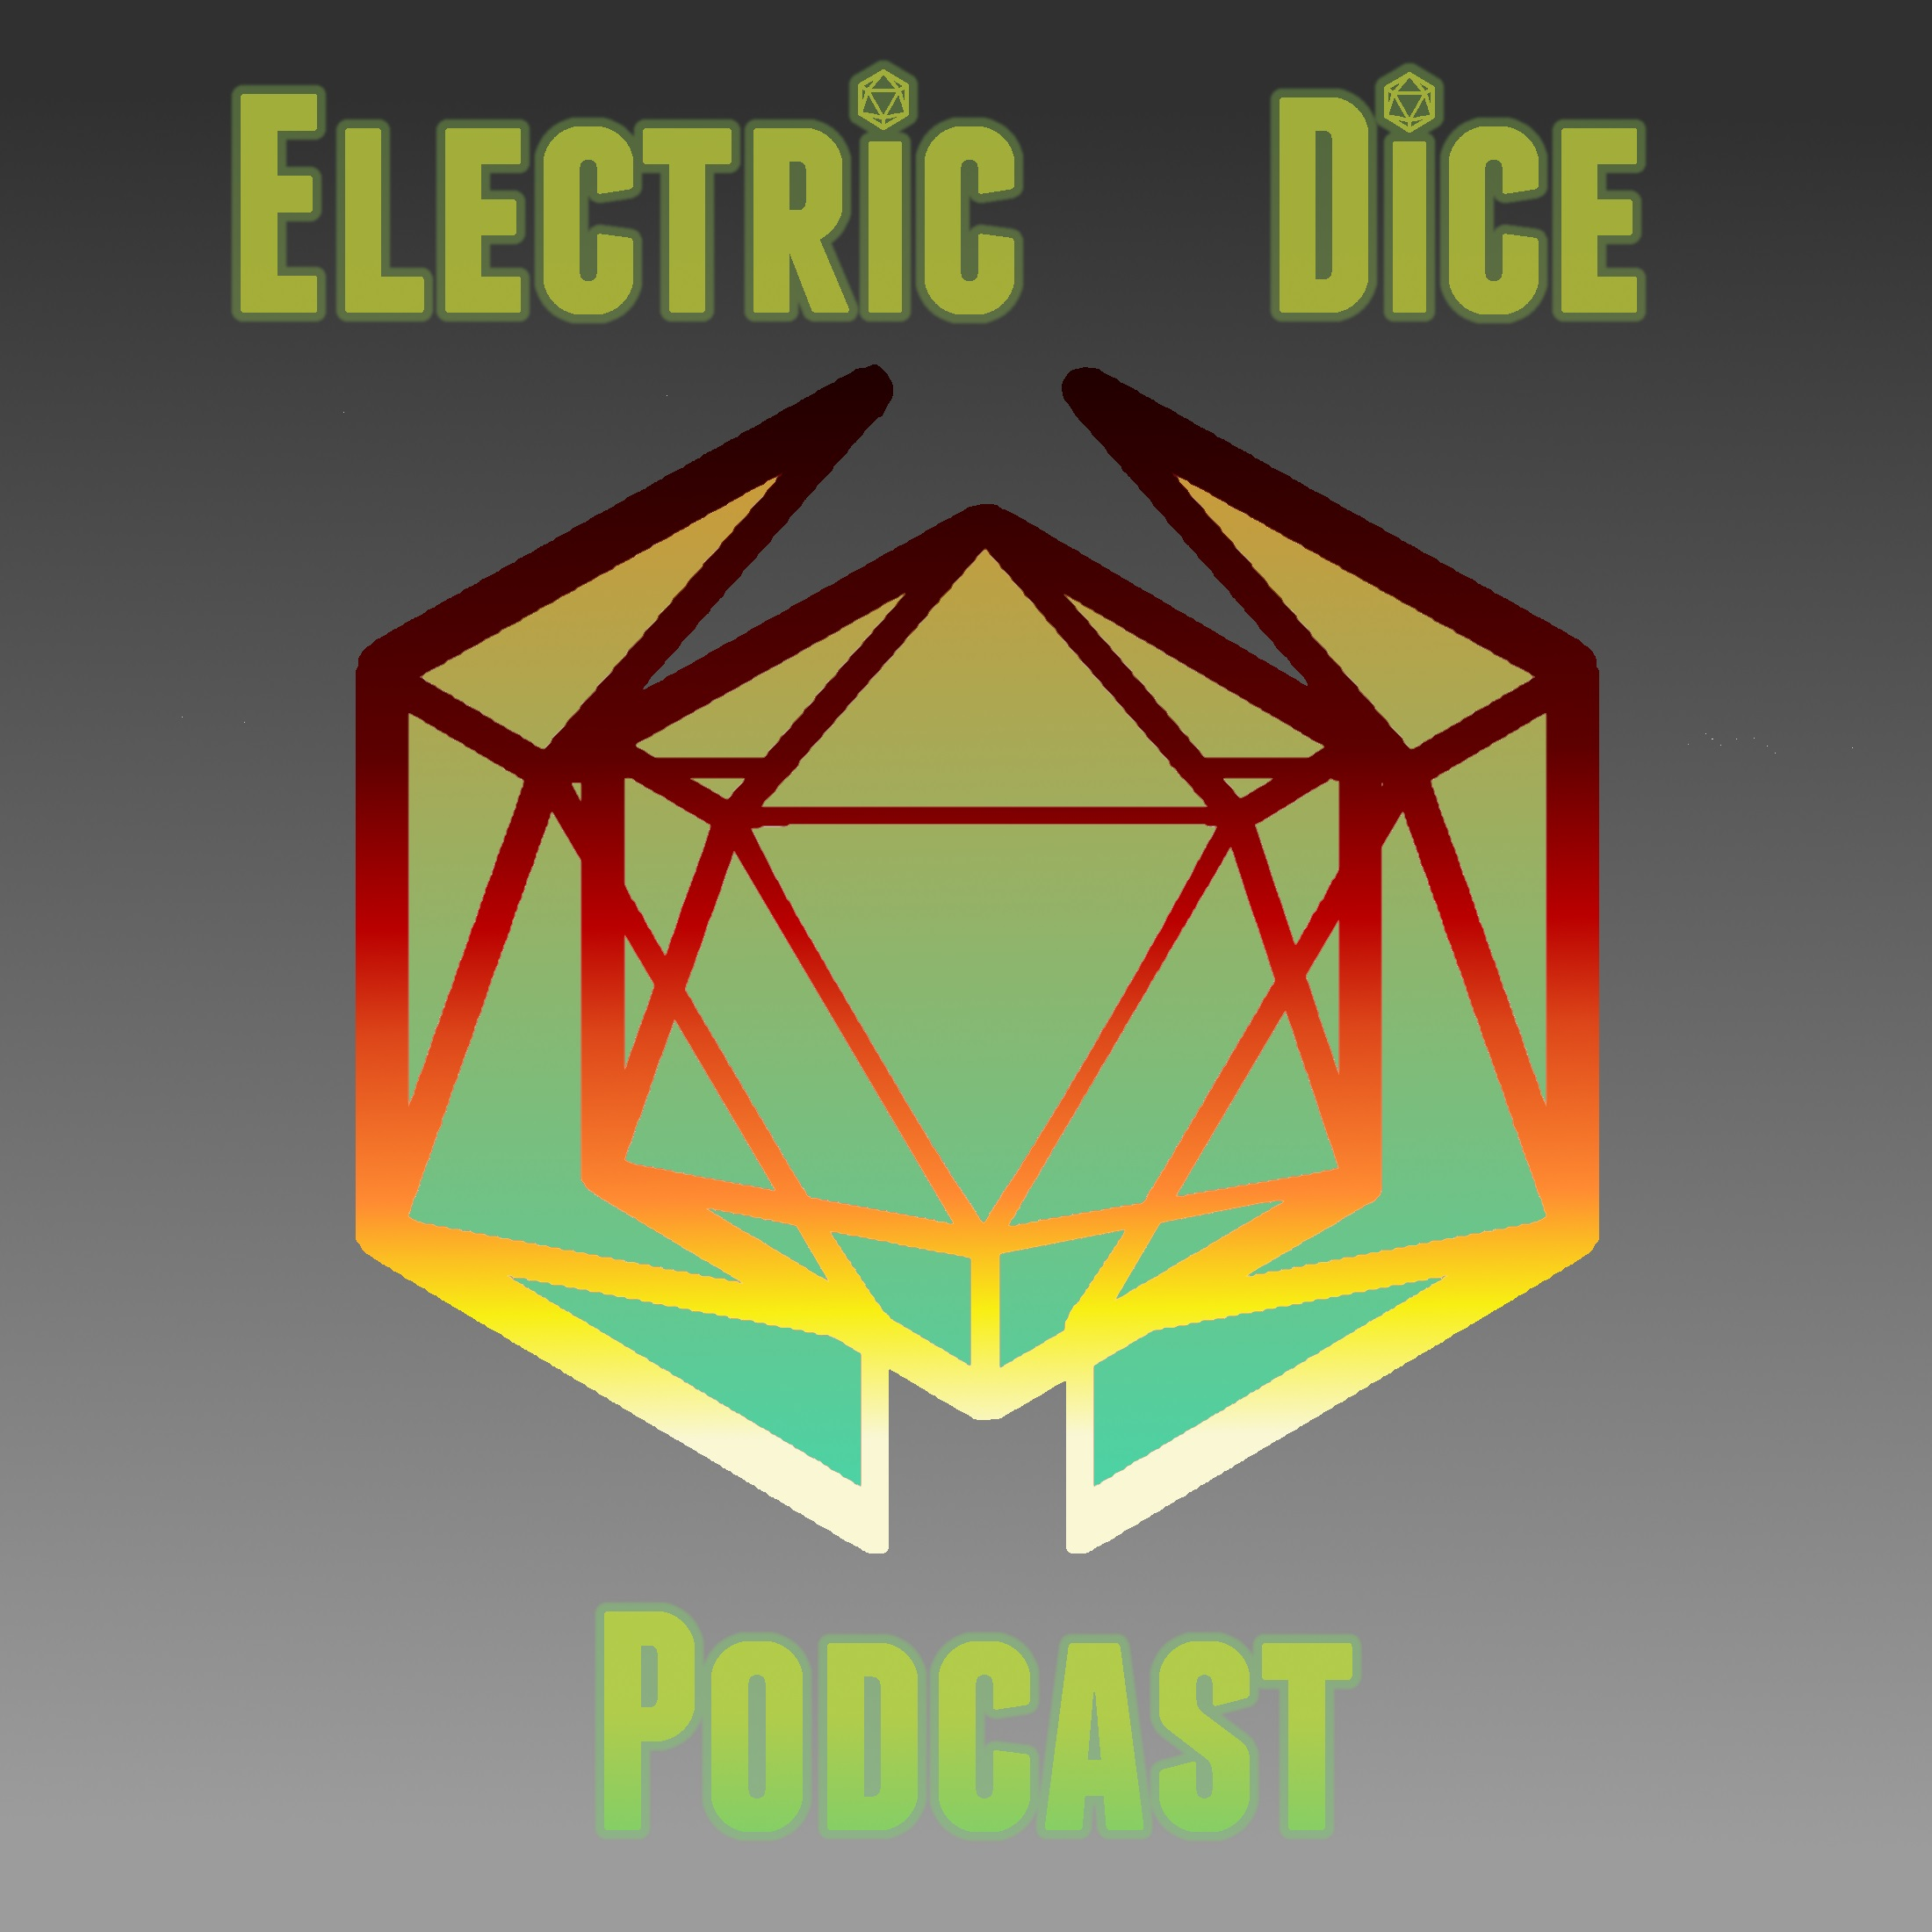 Electric Dice Podcast